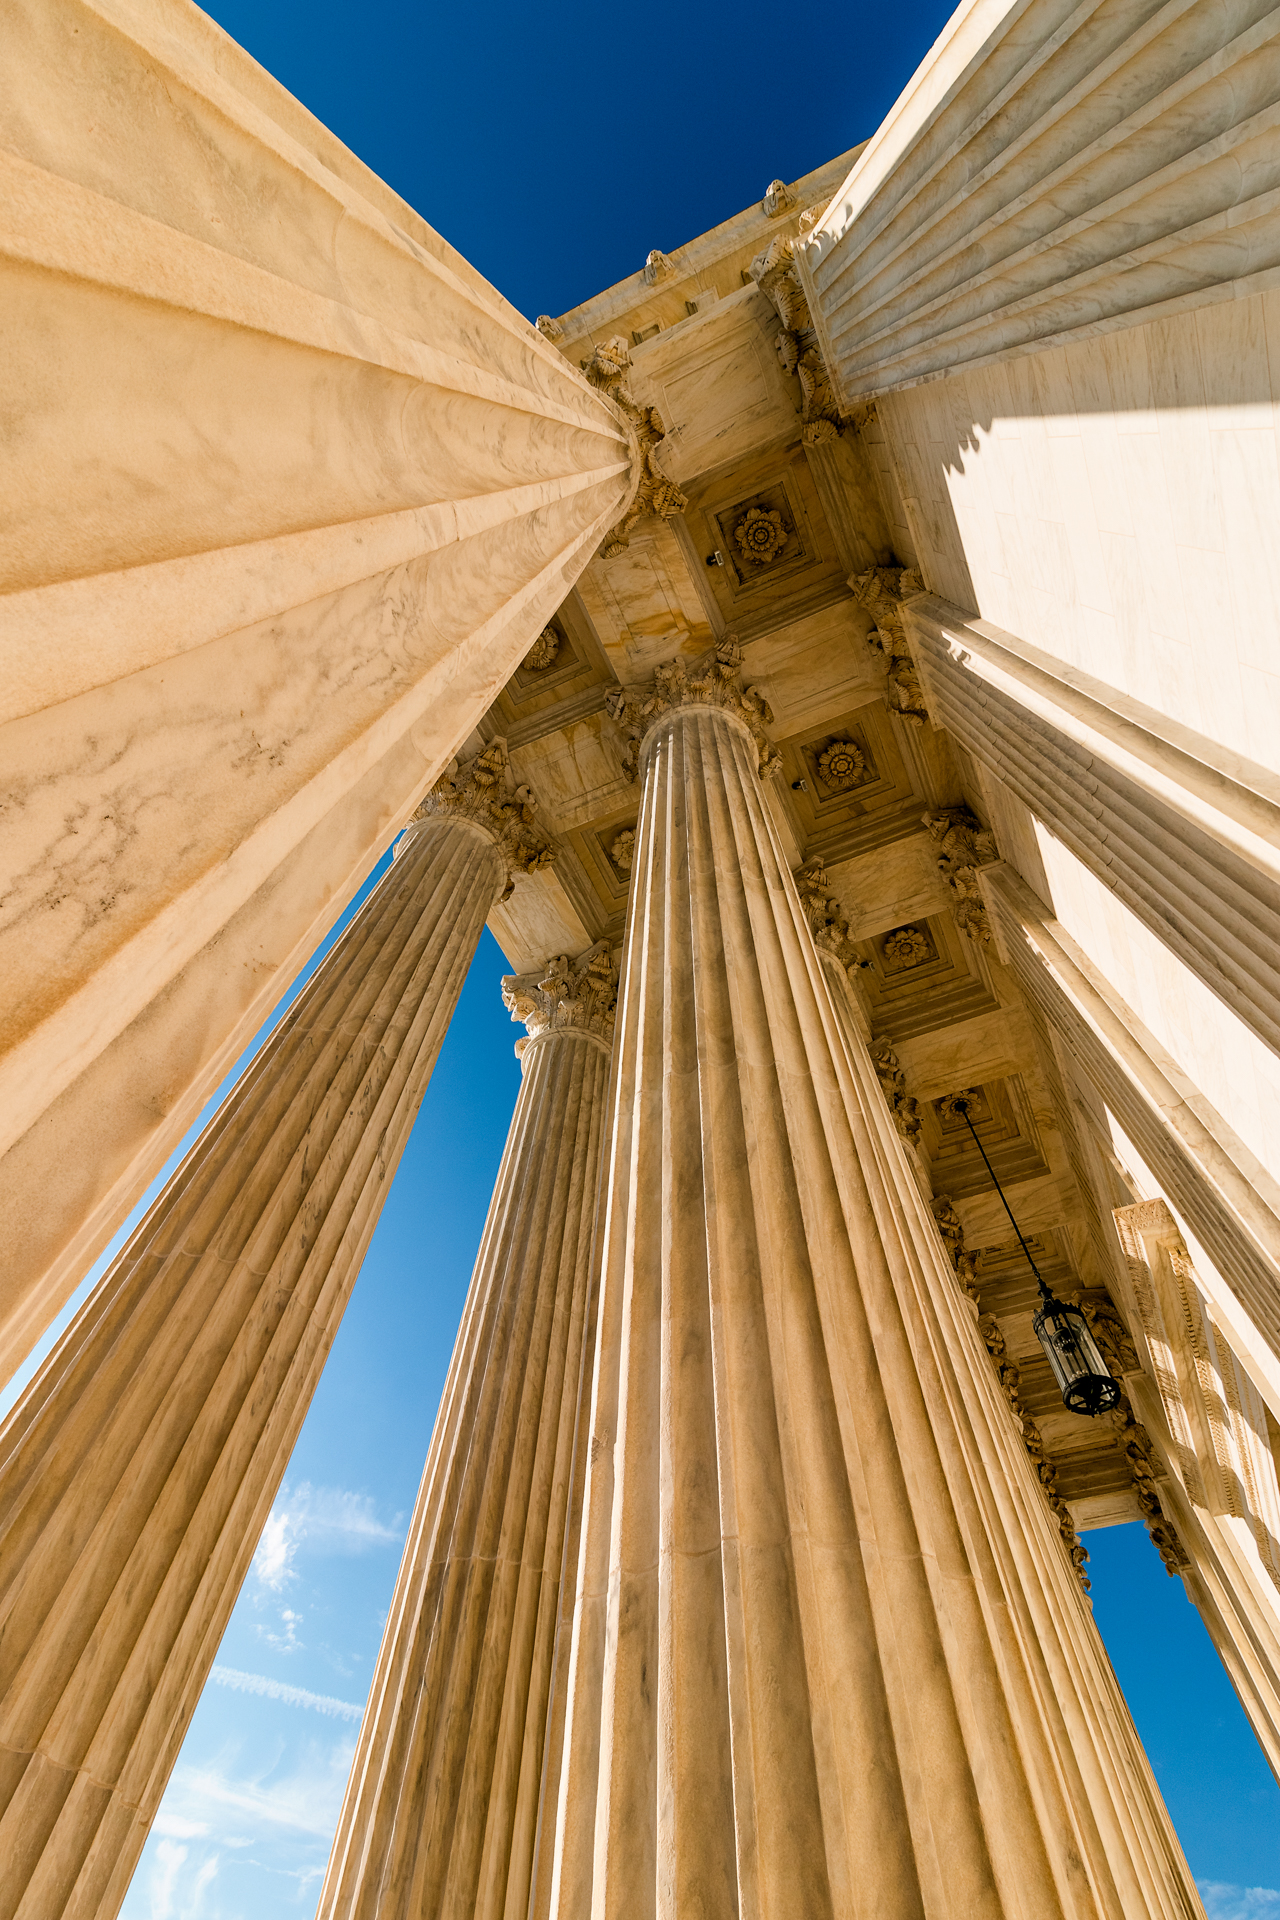 The Classics – Wide angle view of the columns at the Supreme Court{&amp;nbsp;}(Image: Zack Lewkowicz)<p></p>